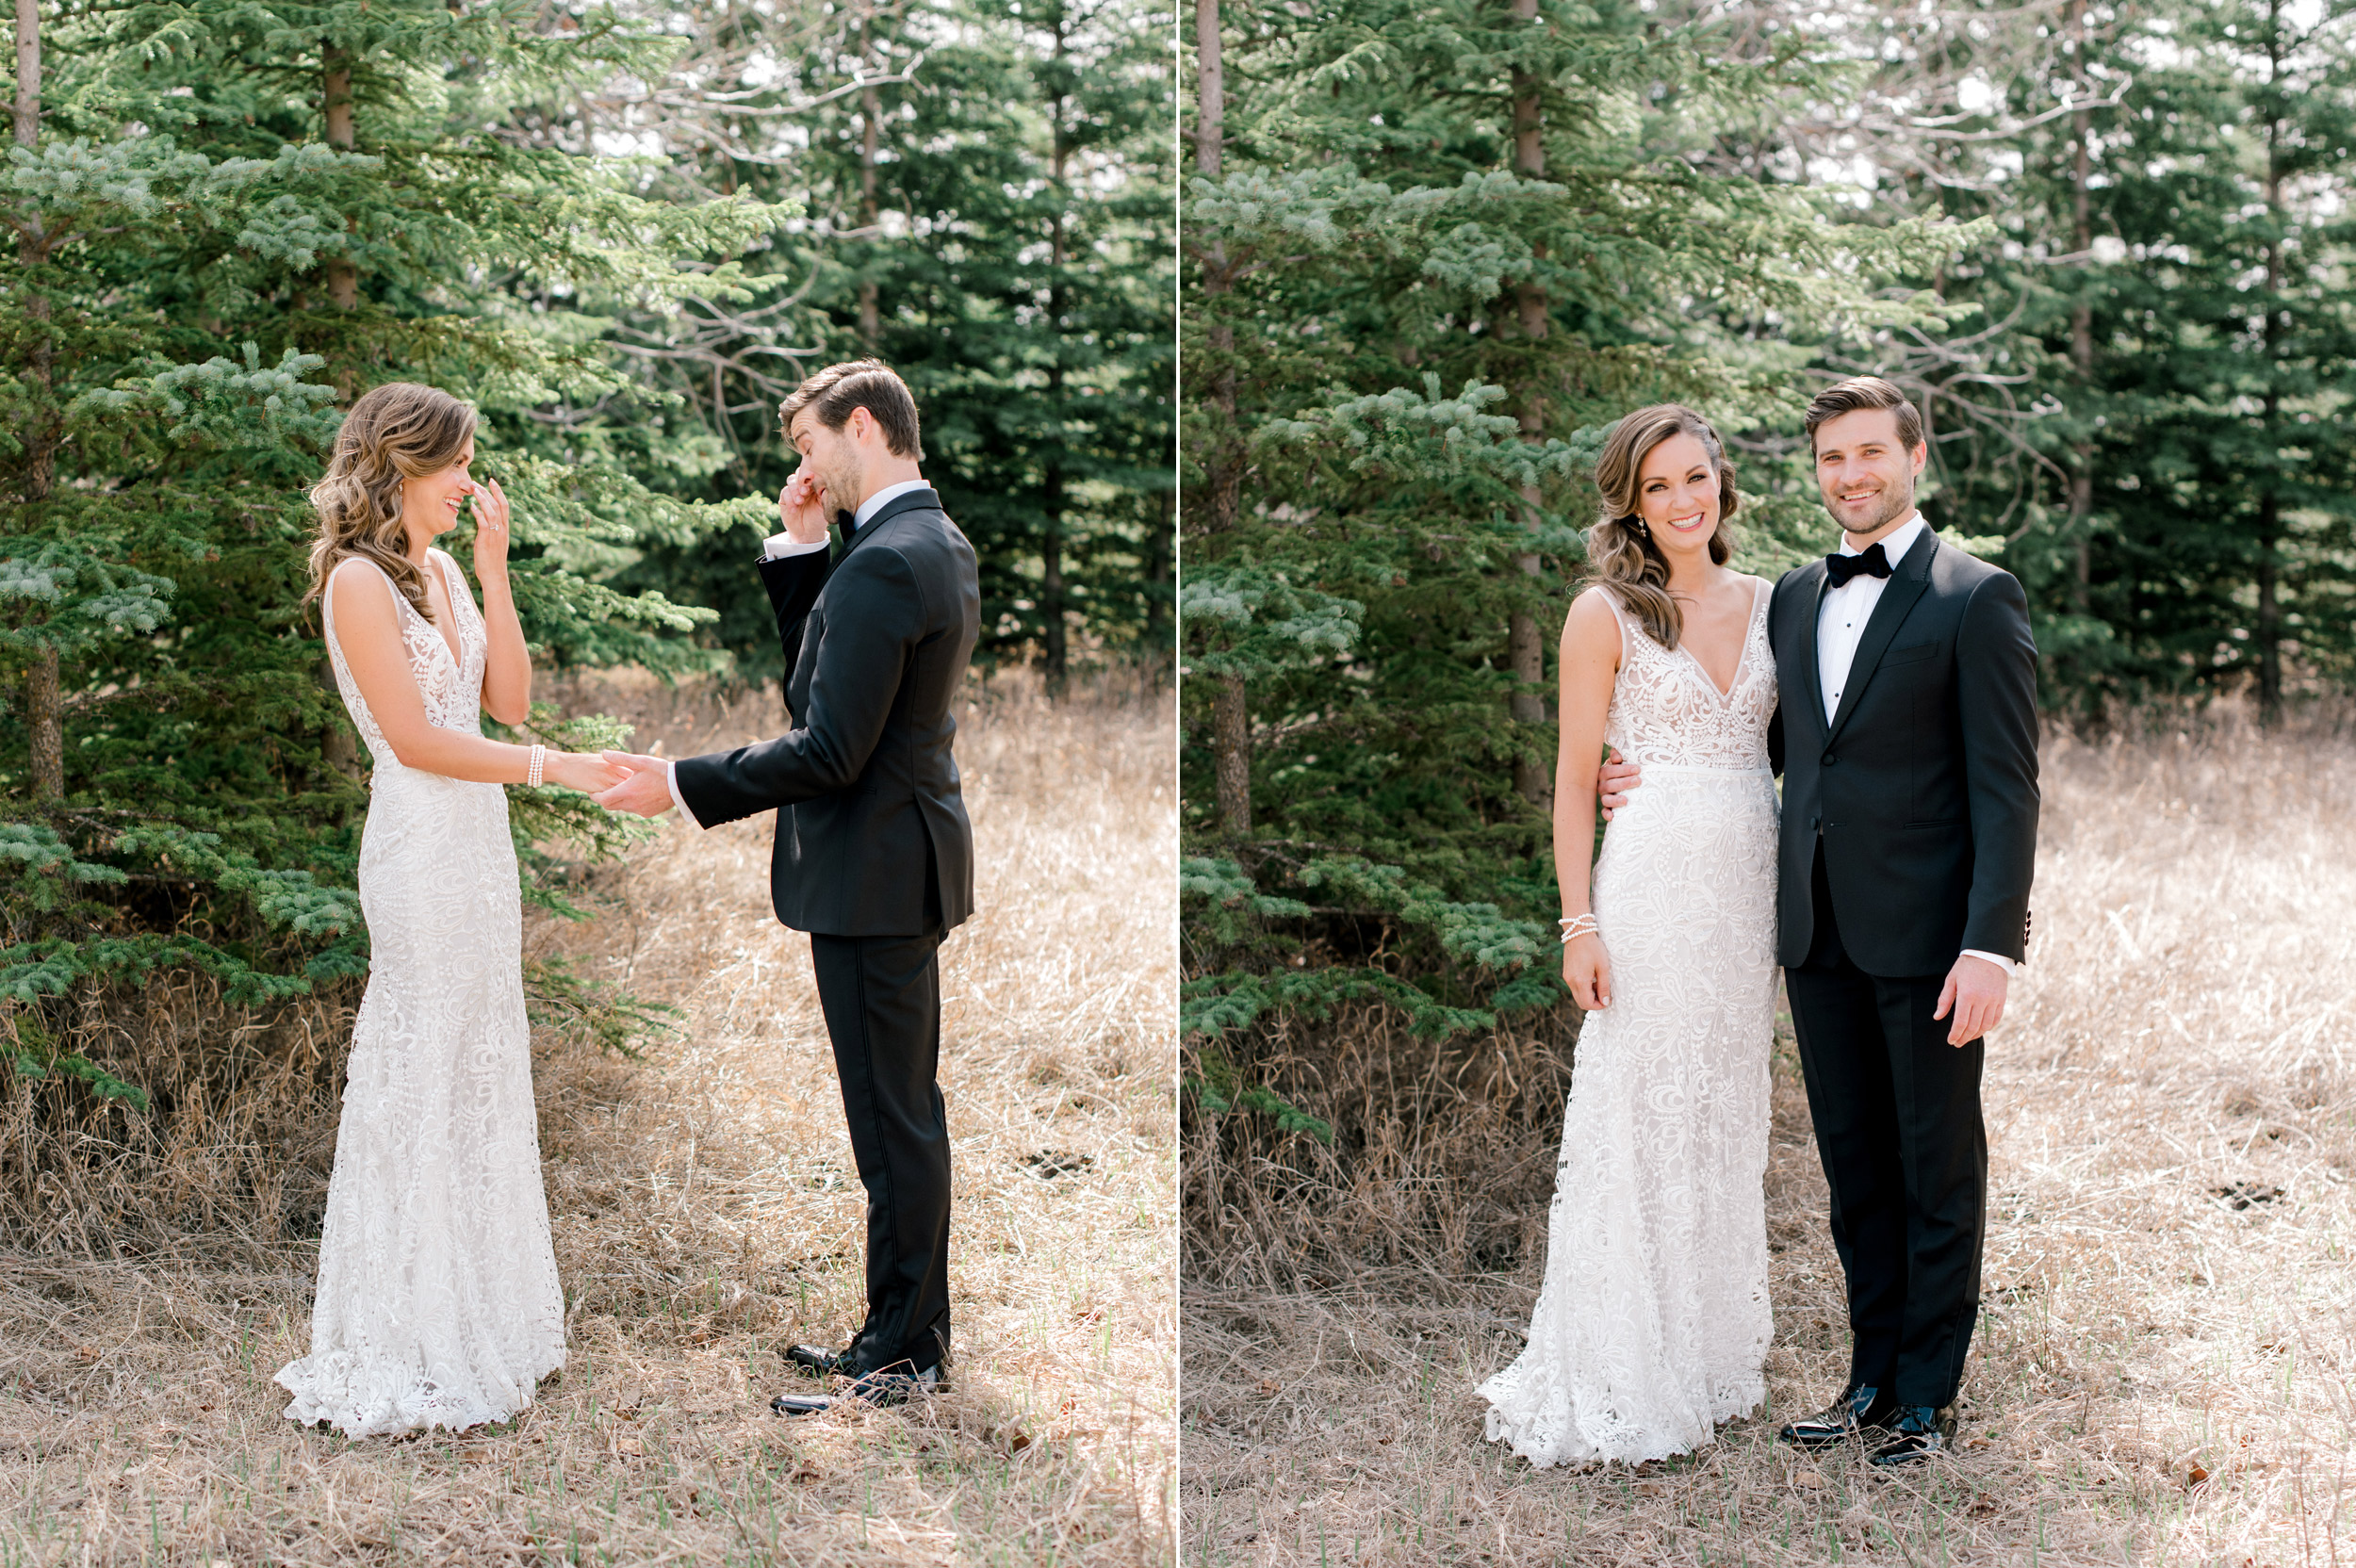 038-The_Lake_House_Calgary_Wedding.jpg